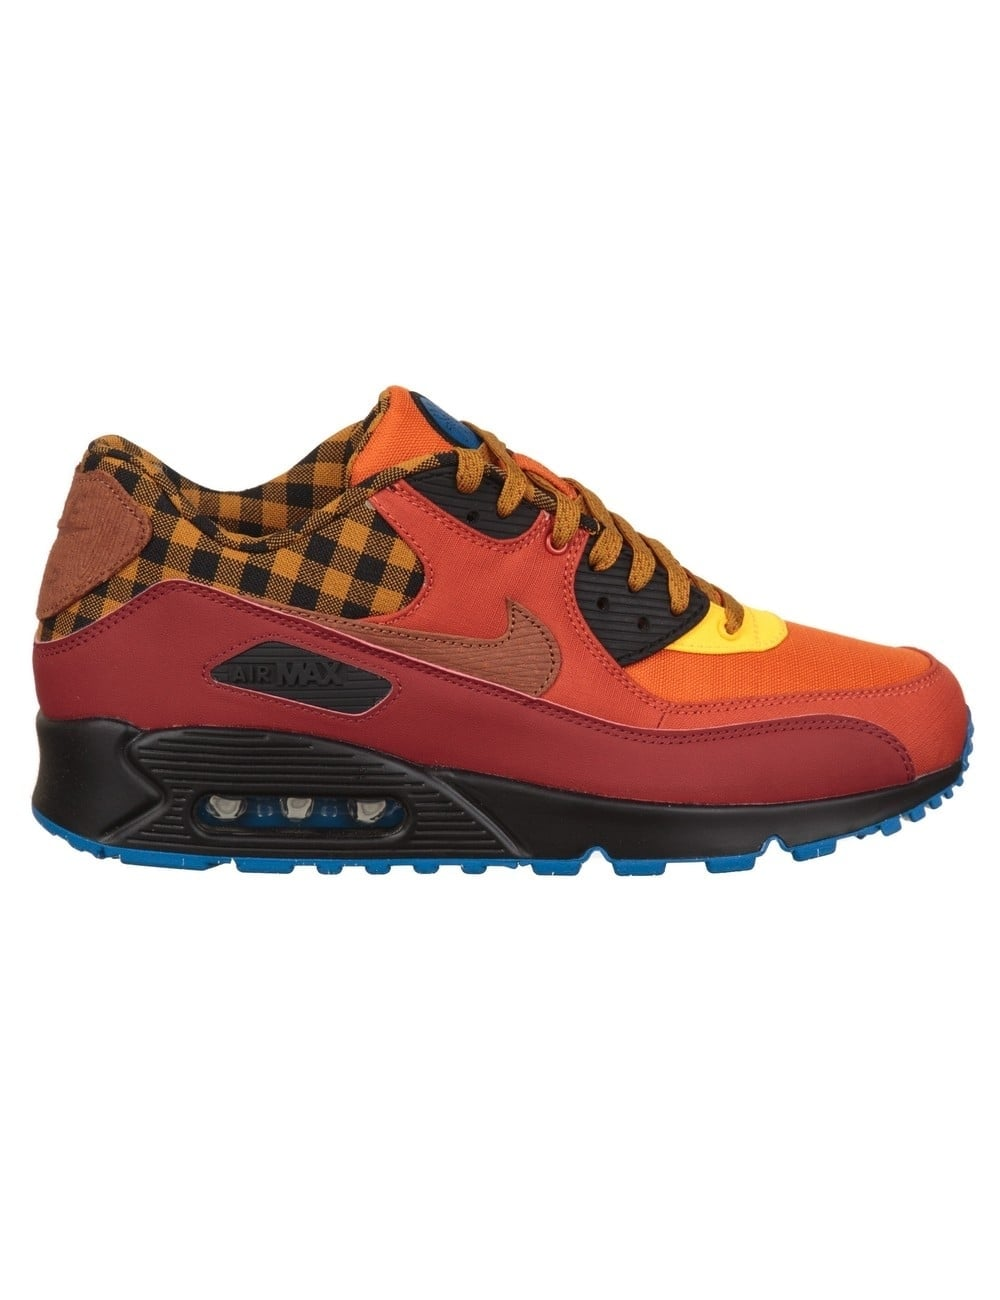 size 40 65ffa 77d31 ... discount code for air max 90 premium shoes dark cayenne gold campfire  pack fe5c8 62939 hot nike ...